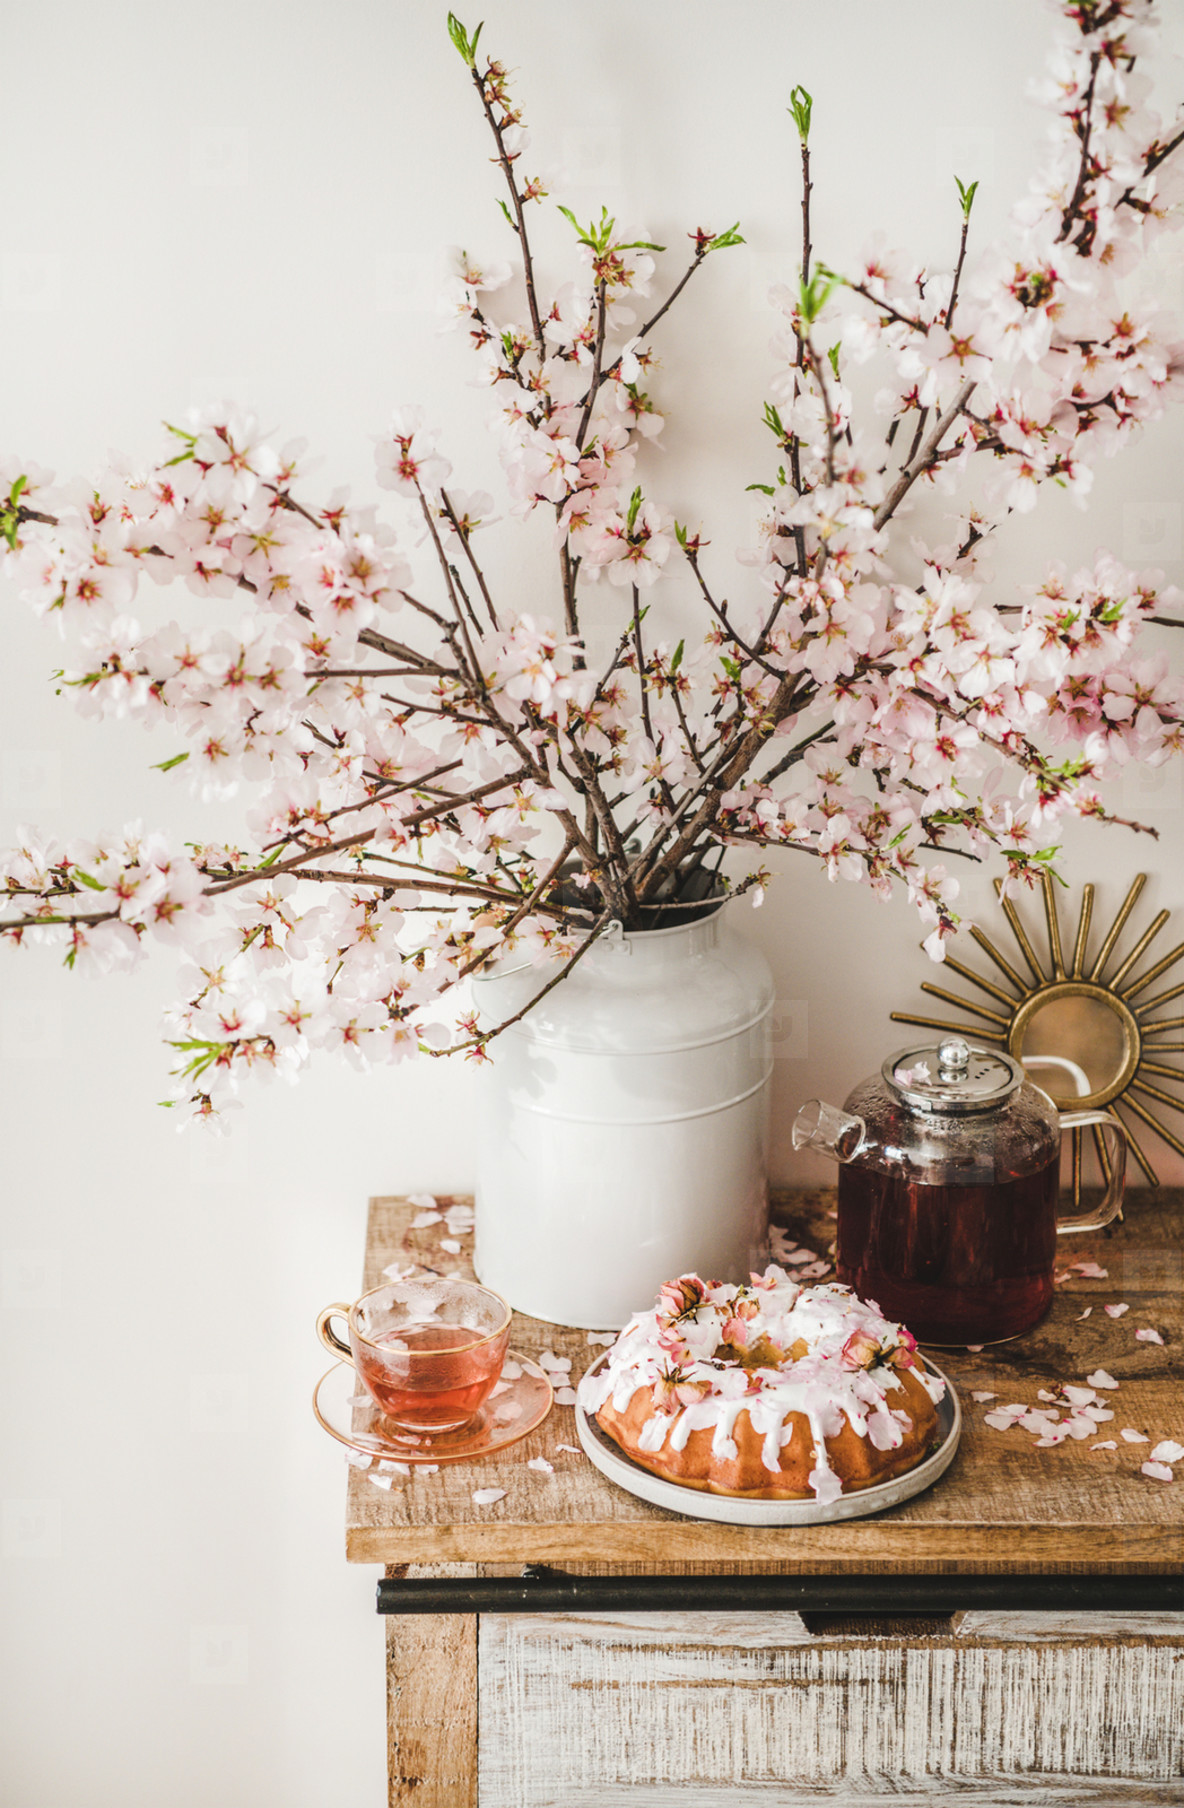 Gluten free bundt cake and tea under blooming branches